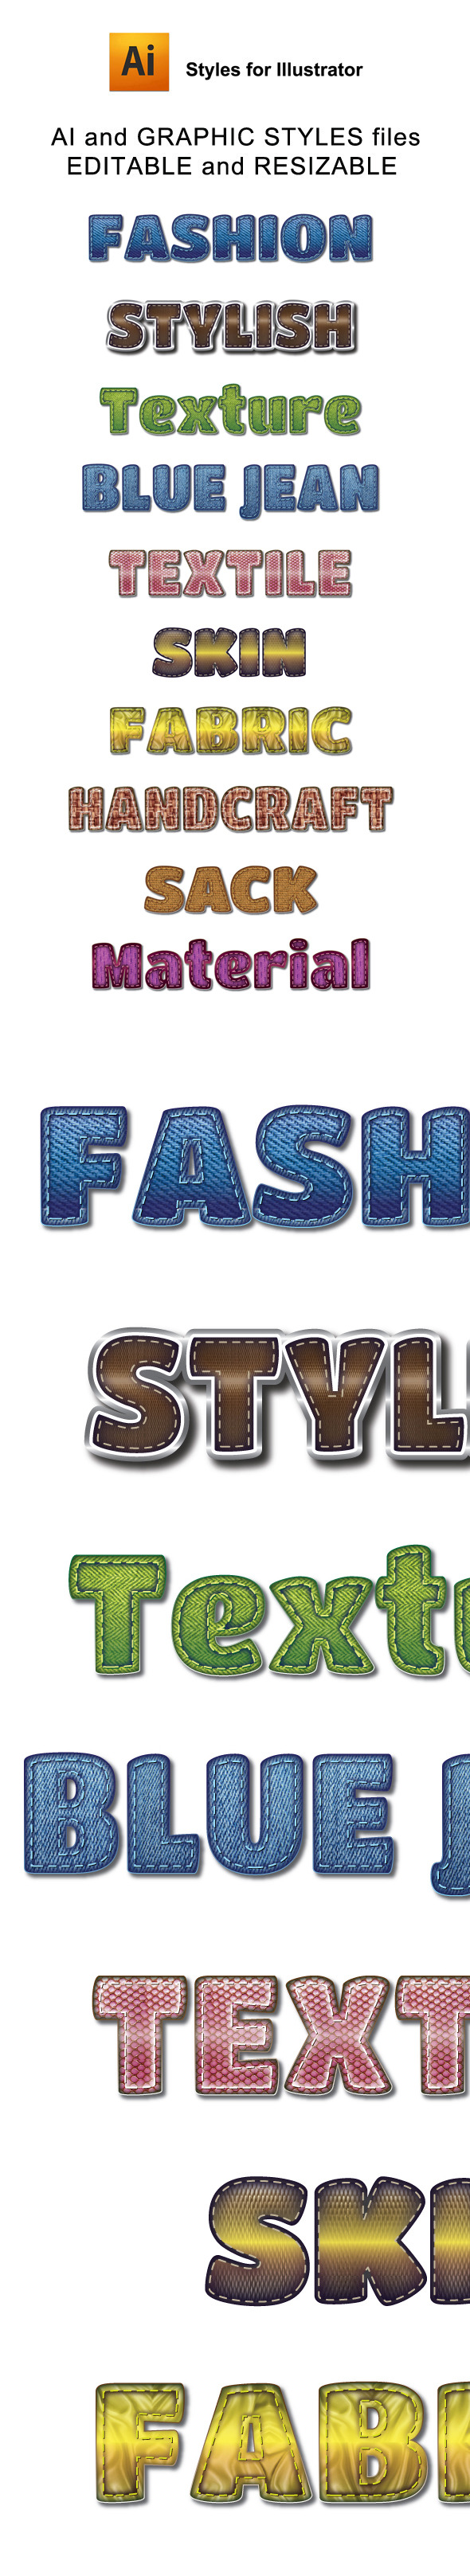 Fashion Material Graphic Styles for Ai - Styles Illustrator